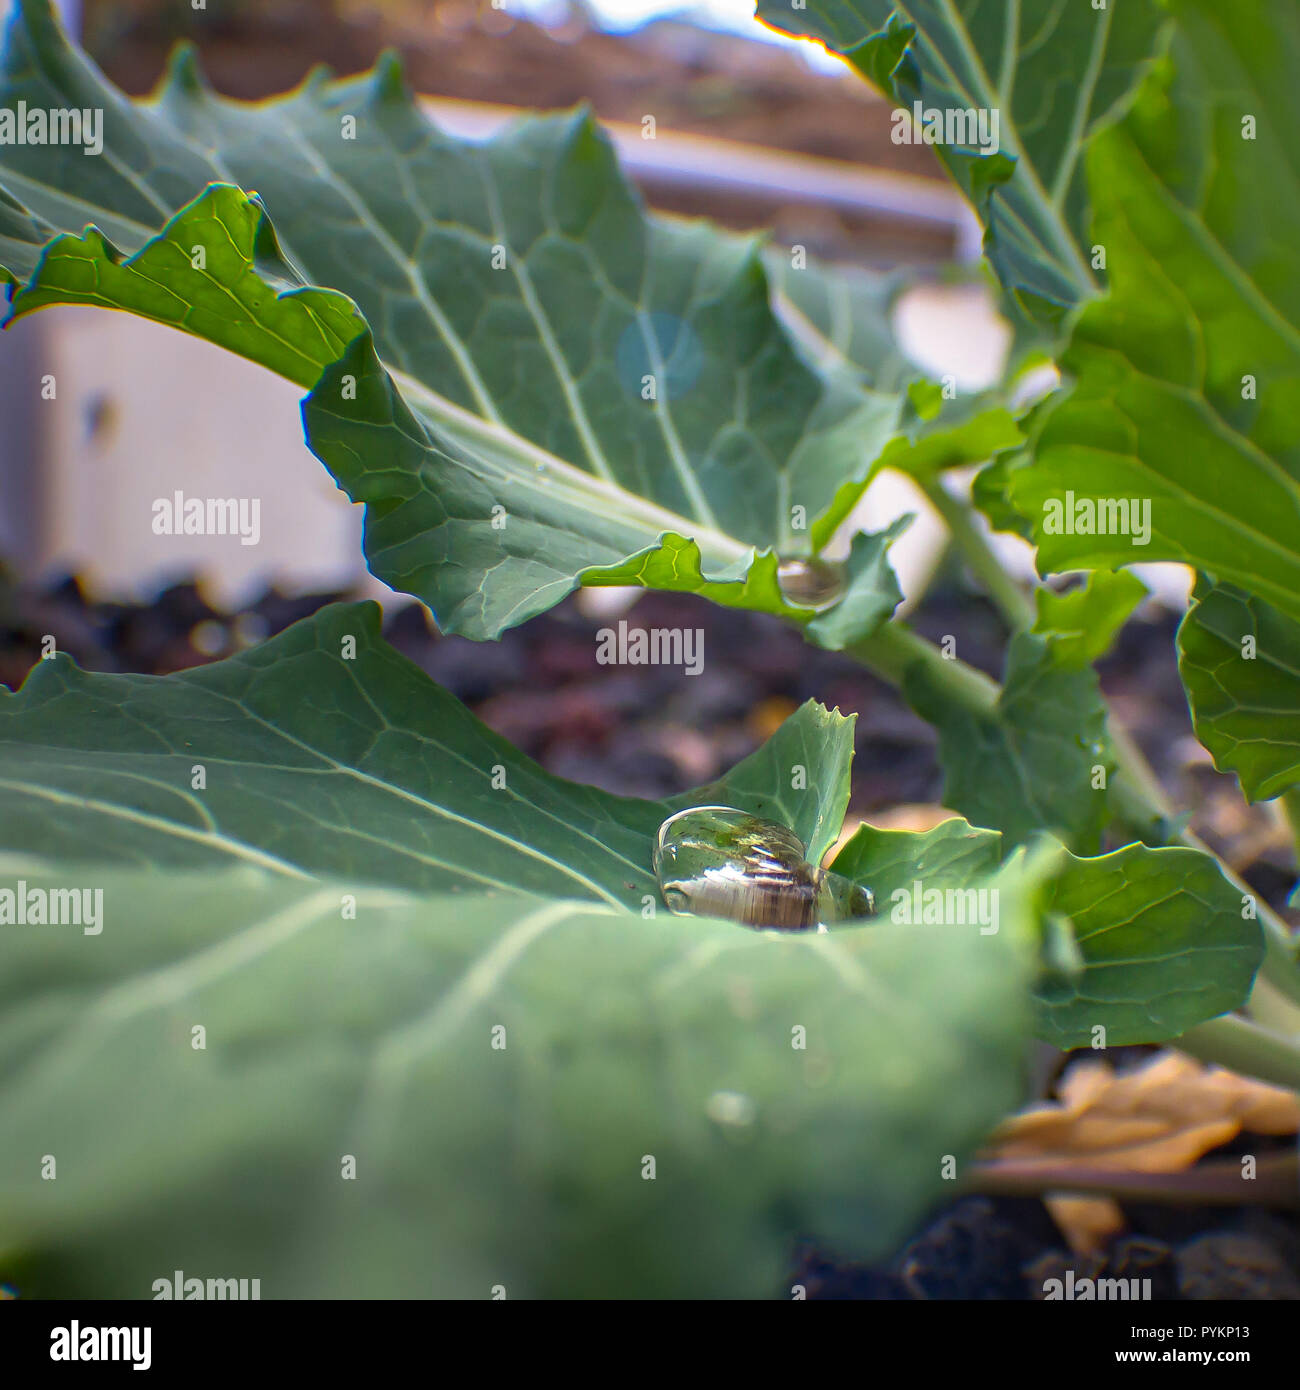 Dewdrops caught on green leaves of a plant - Stock Image